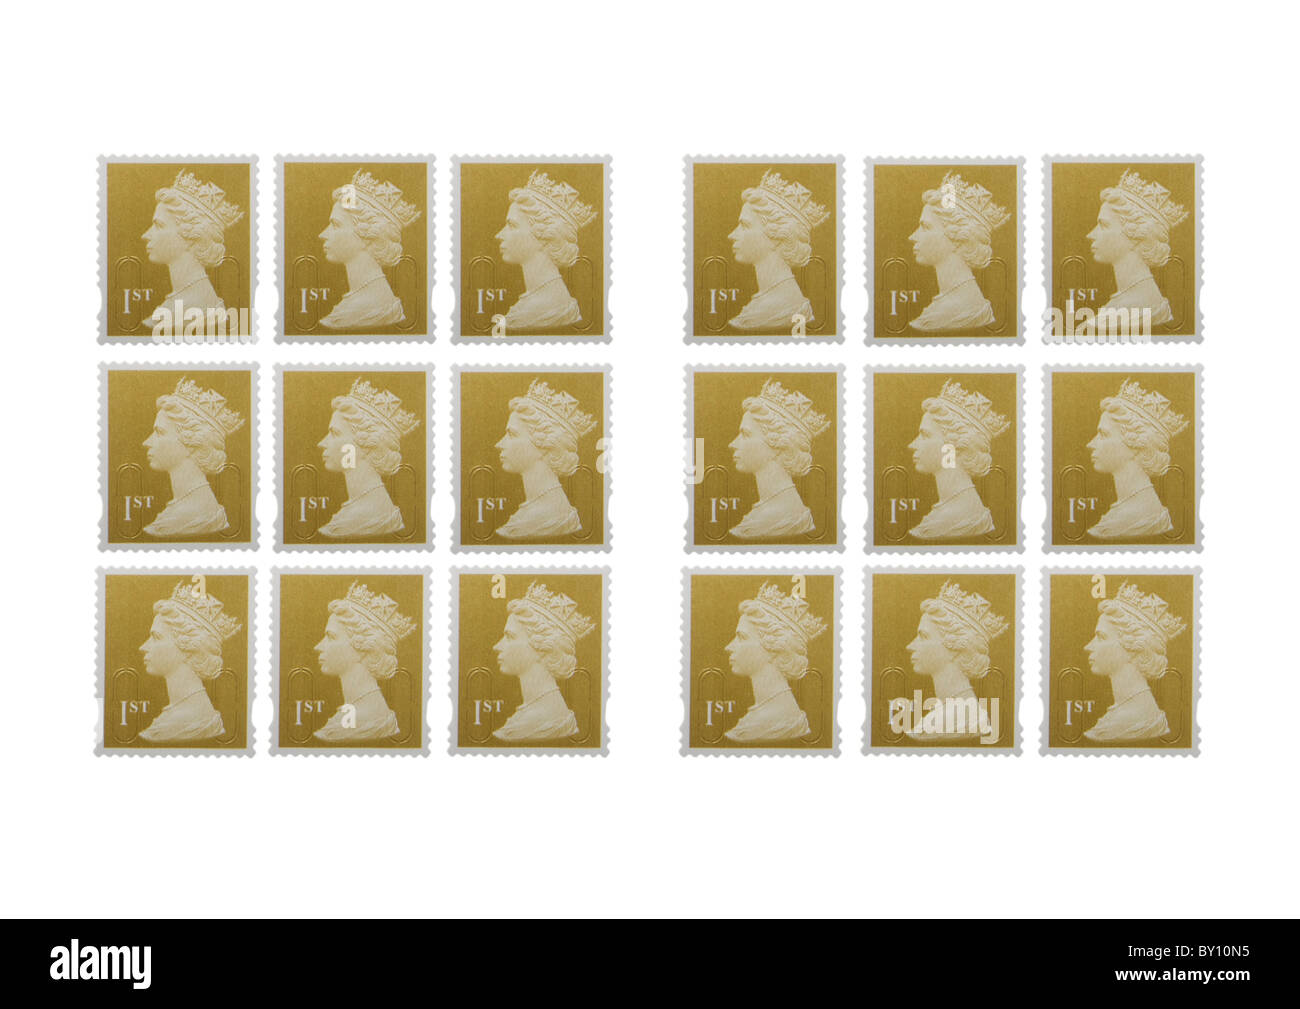 First class stamp on white background - Stock Image